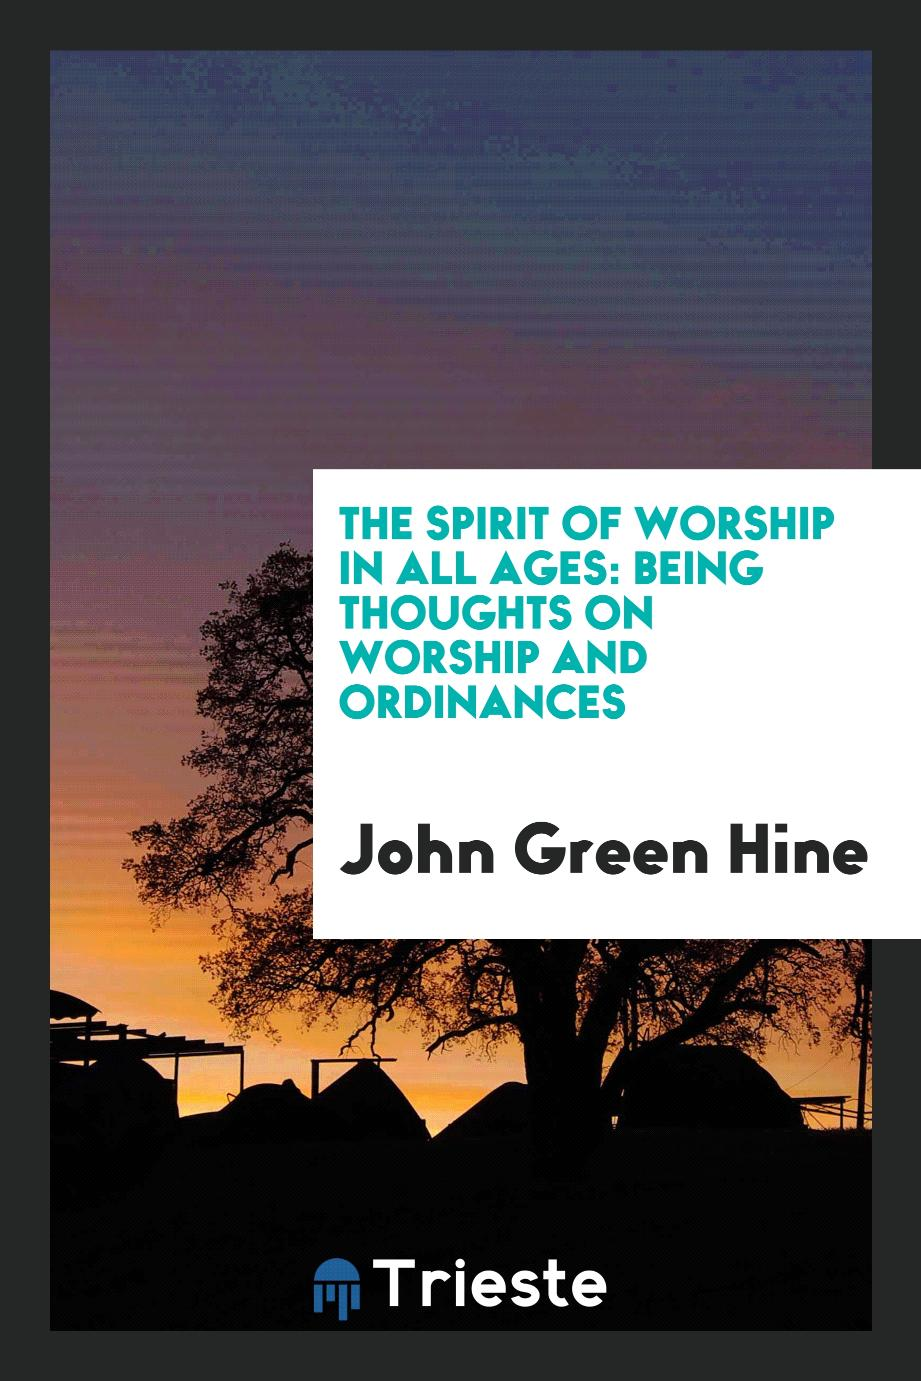 The Spirit of Worship in All Ages: Being Thoughts on Worship and Ordinances